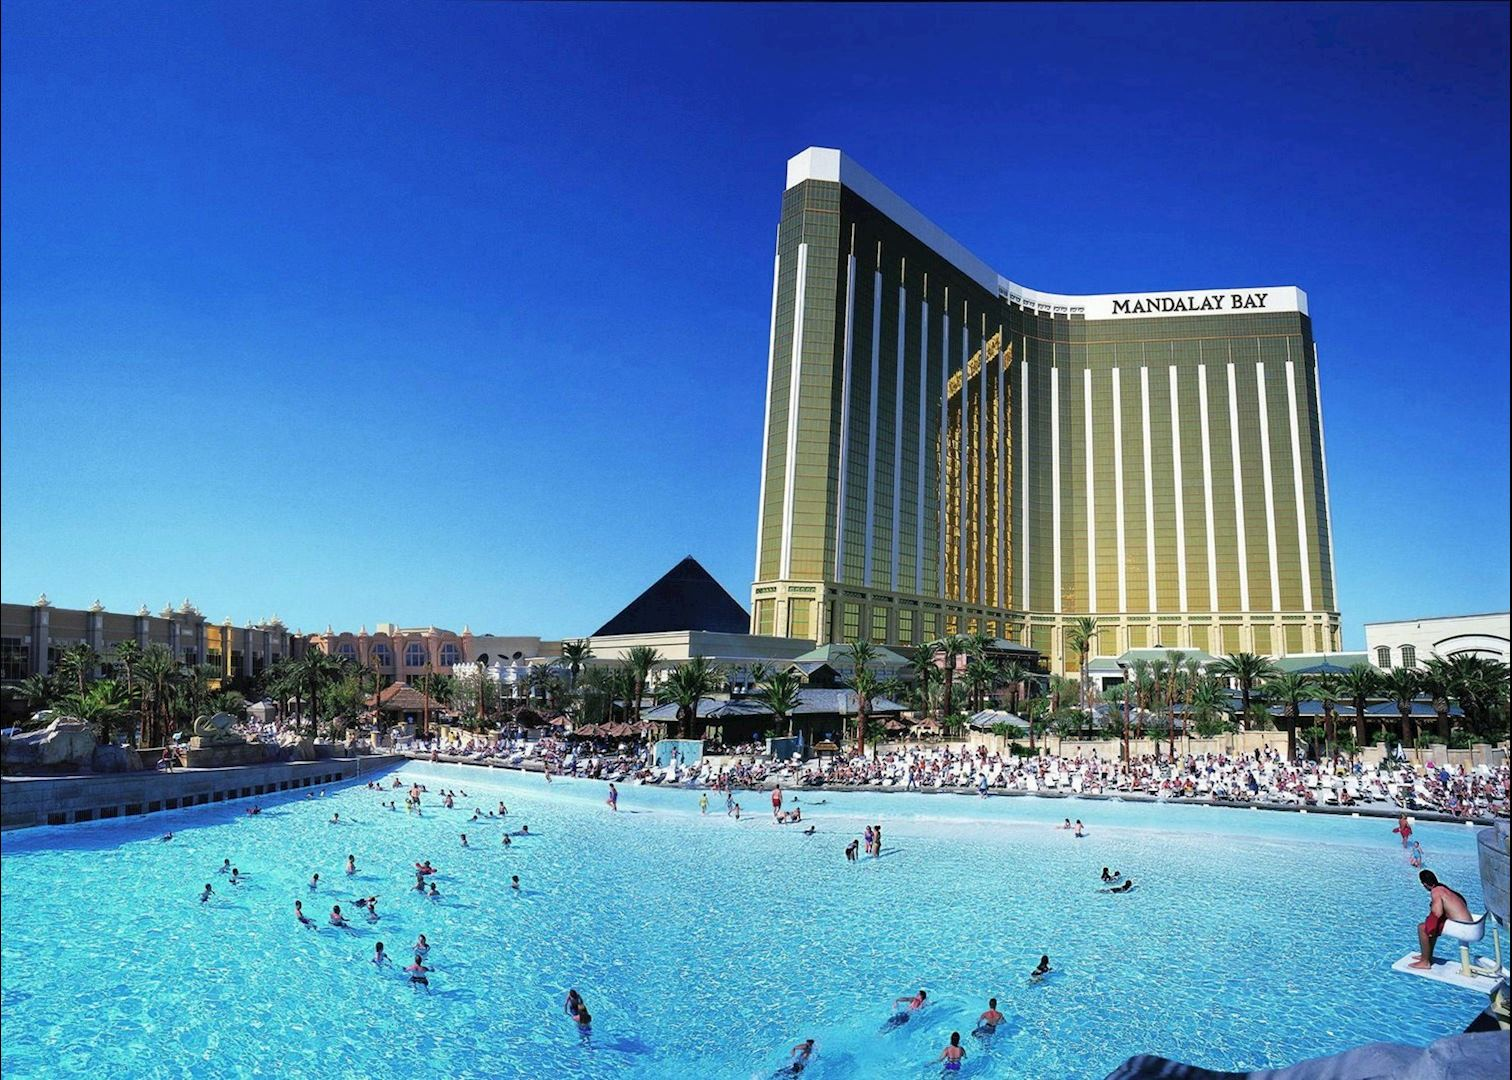 Manadalay Bay